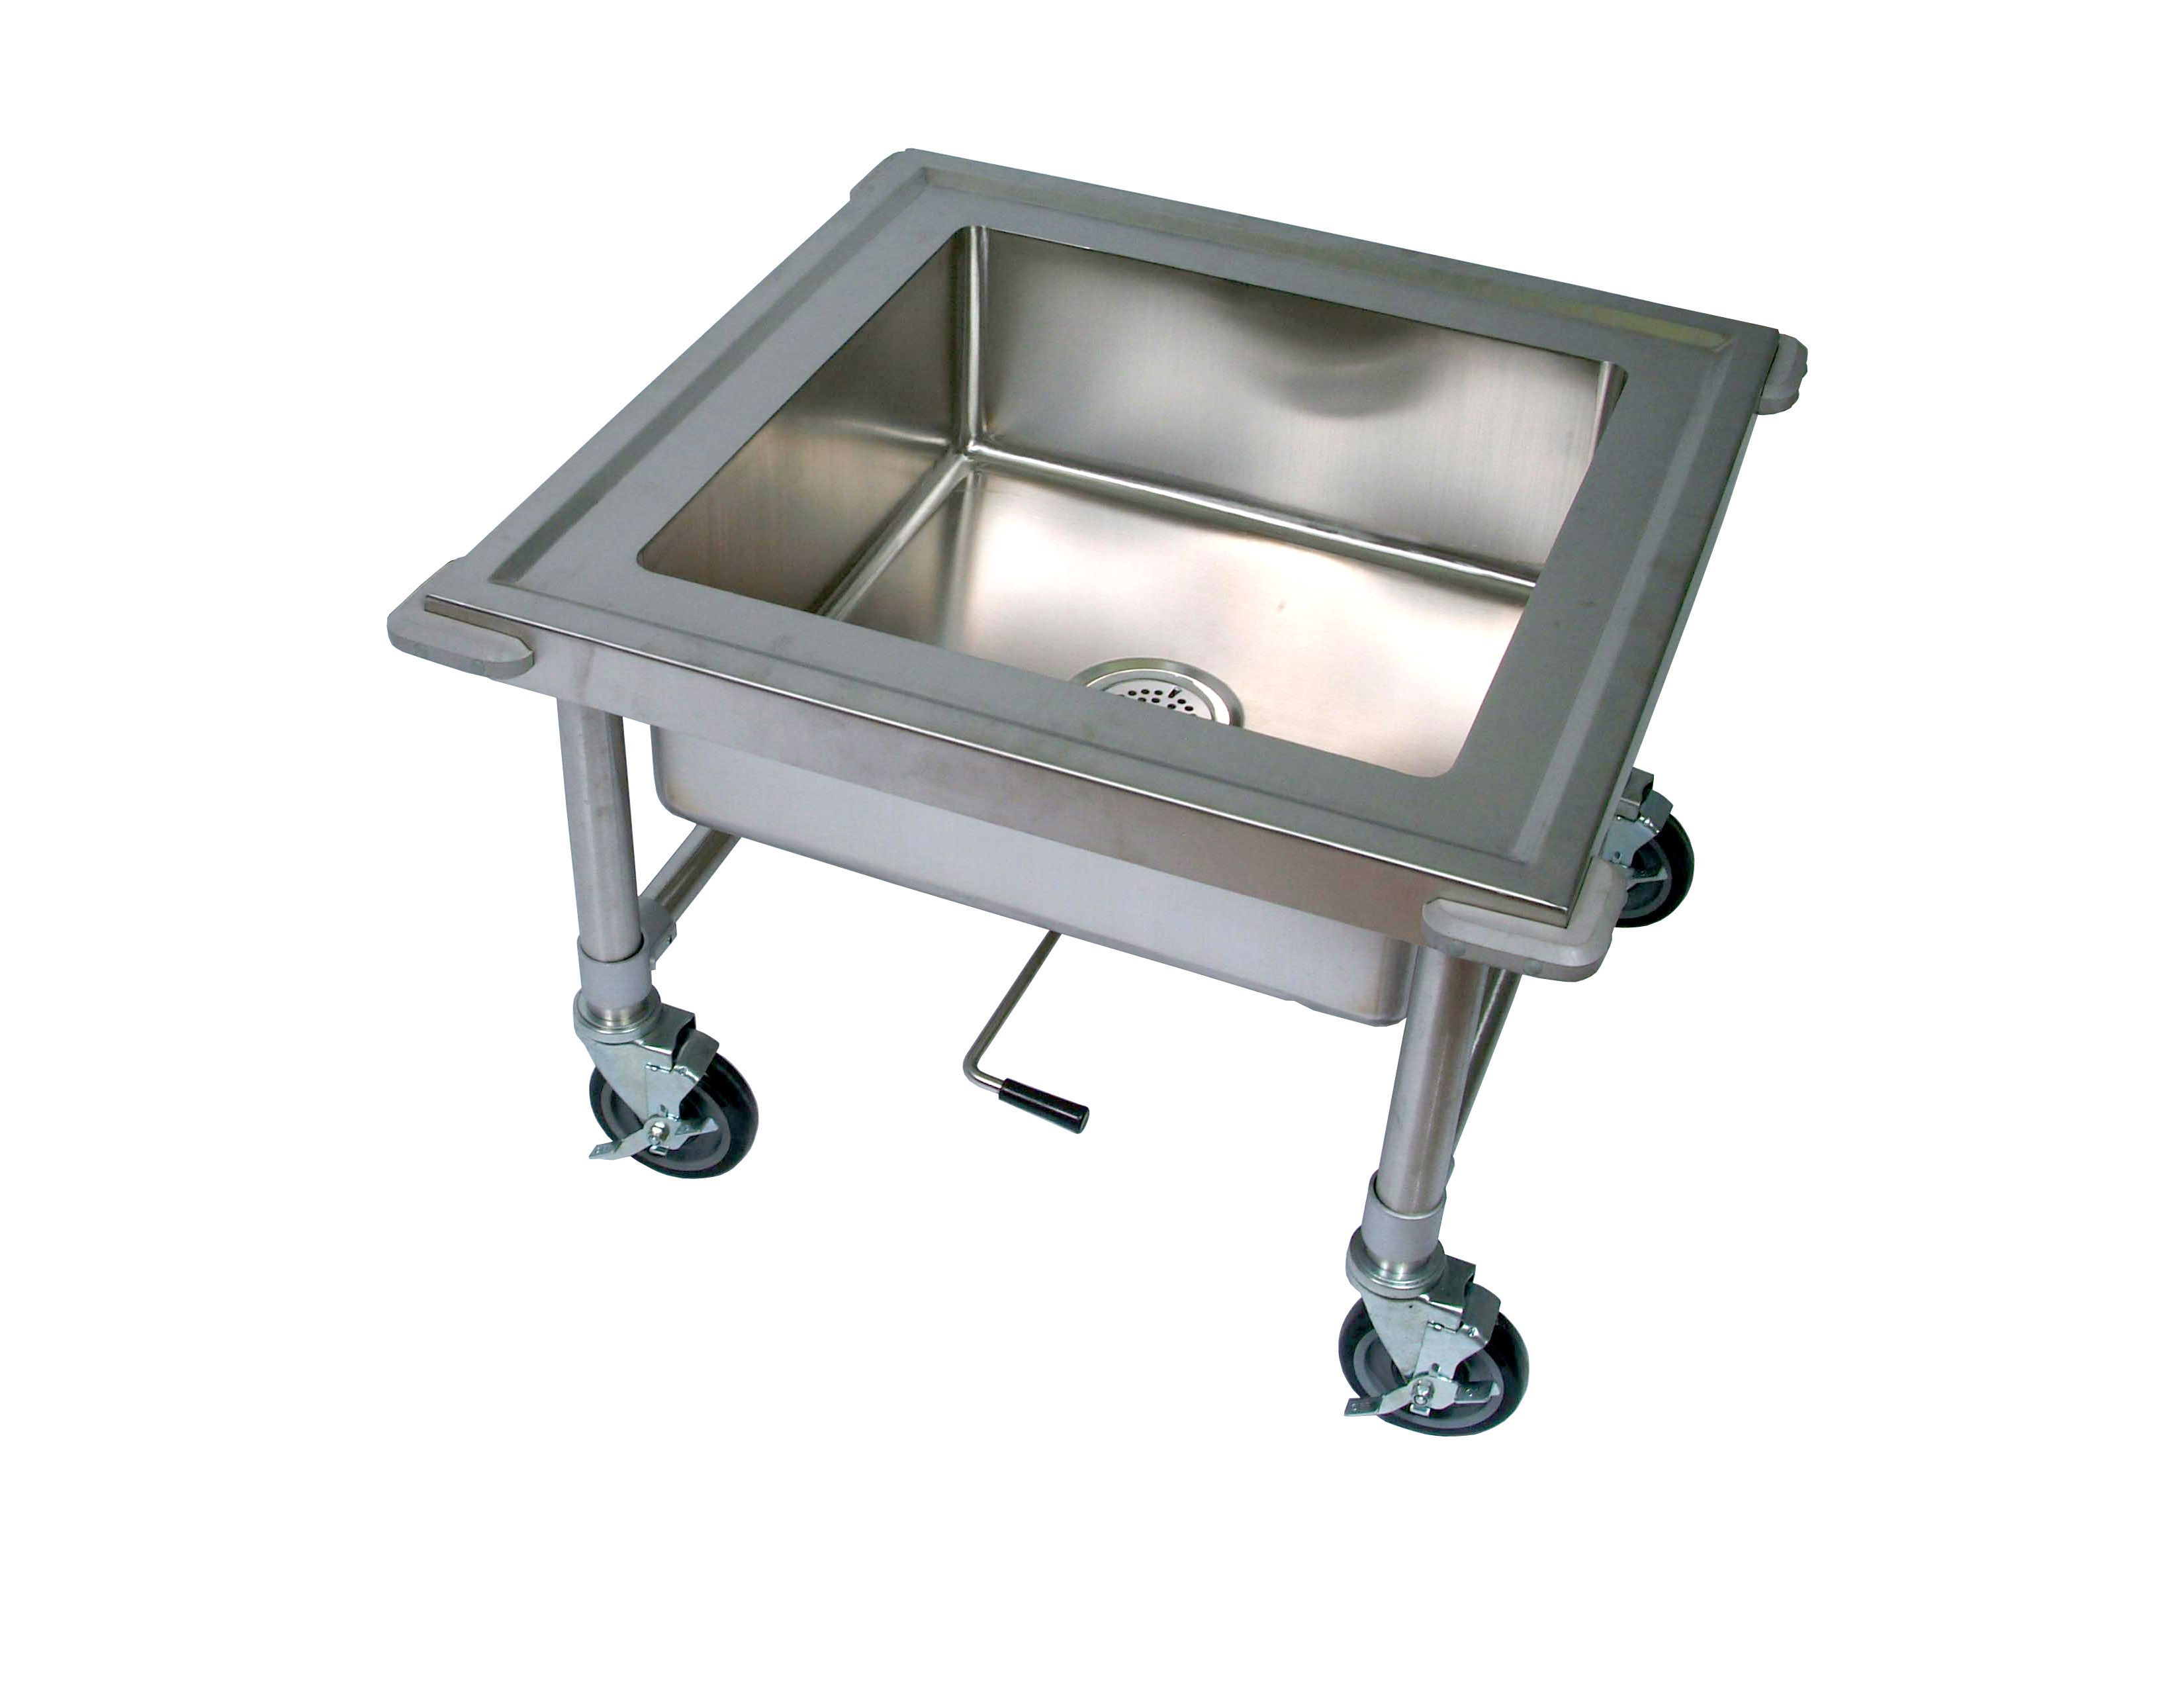 Quality Commercial Kitchen Equipment - All Stainless Heavy Duty Soak ...